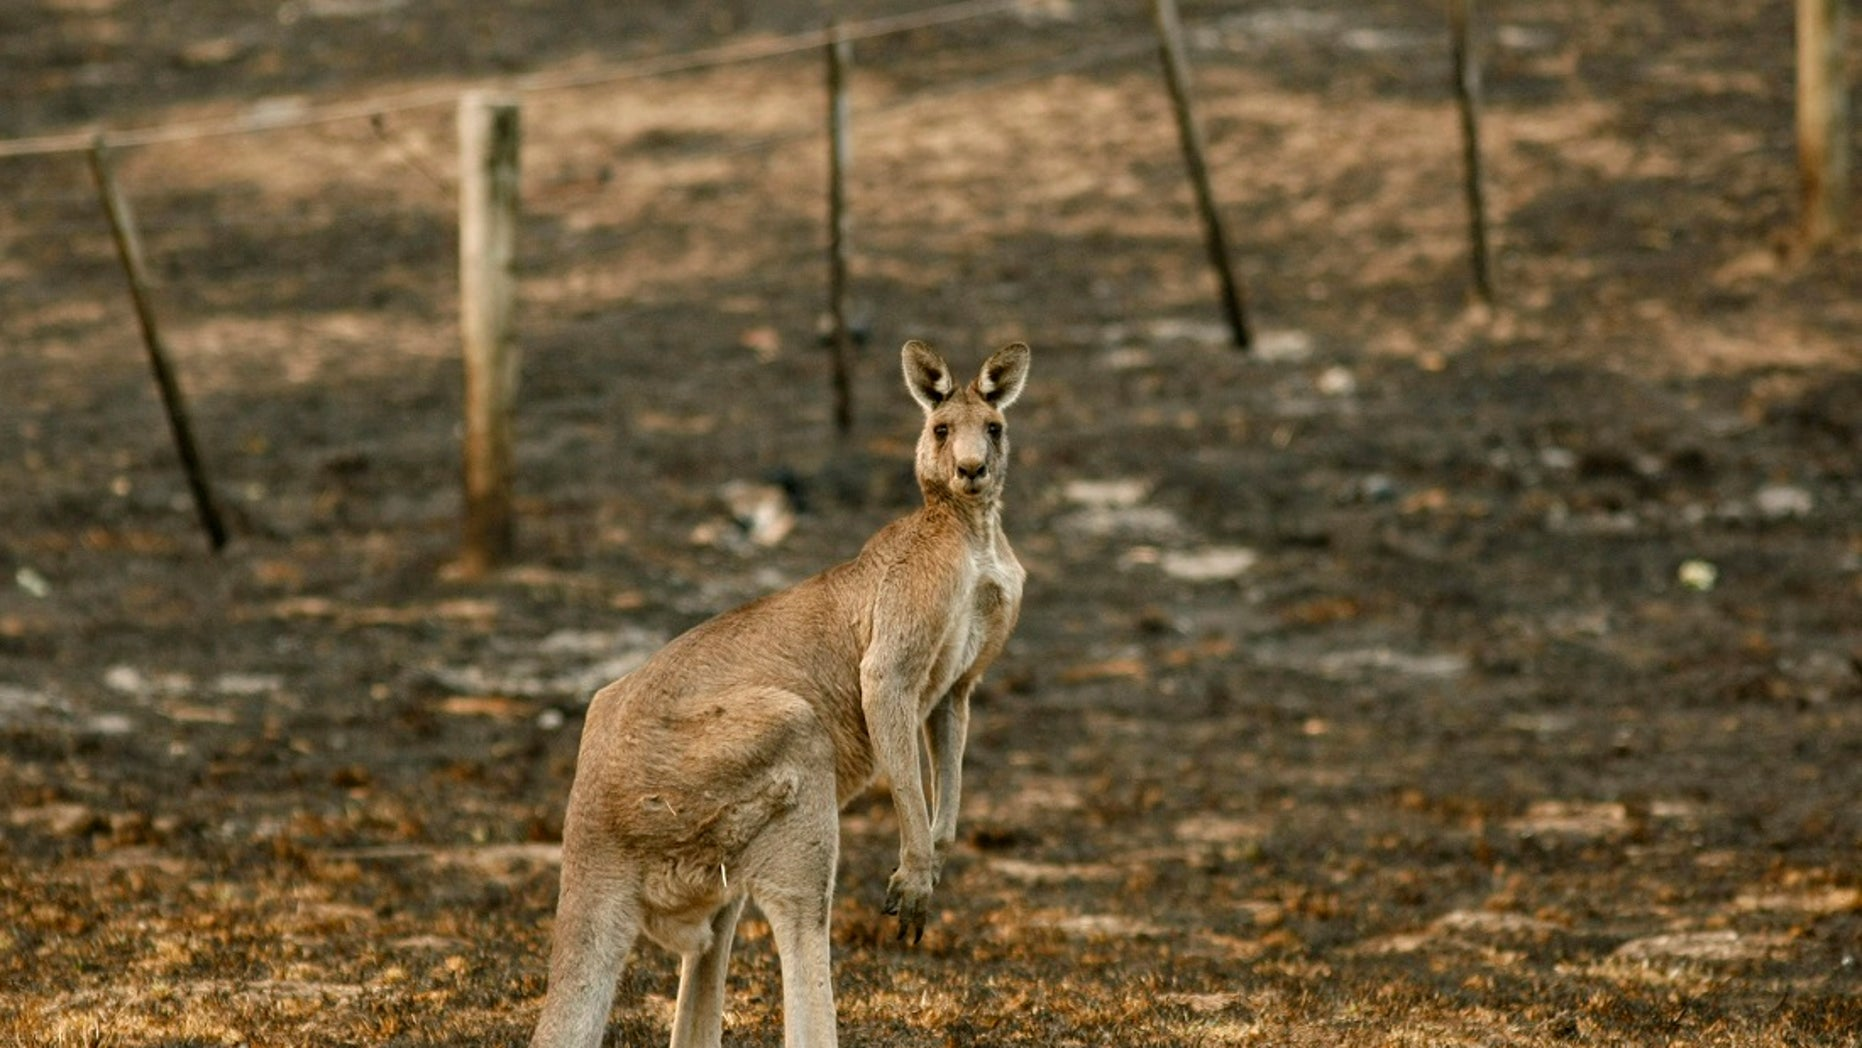 A 9-year-old girl visiting Harmony Park Safari in Alabama on Saturday was reportedly attacked by a kangaroo.